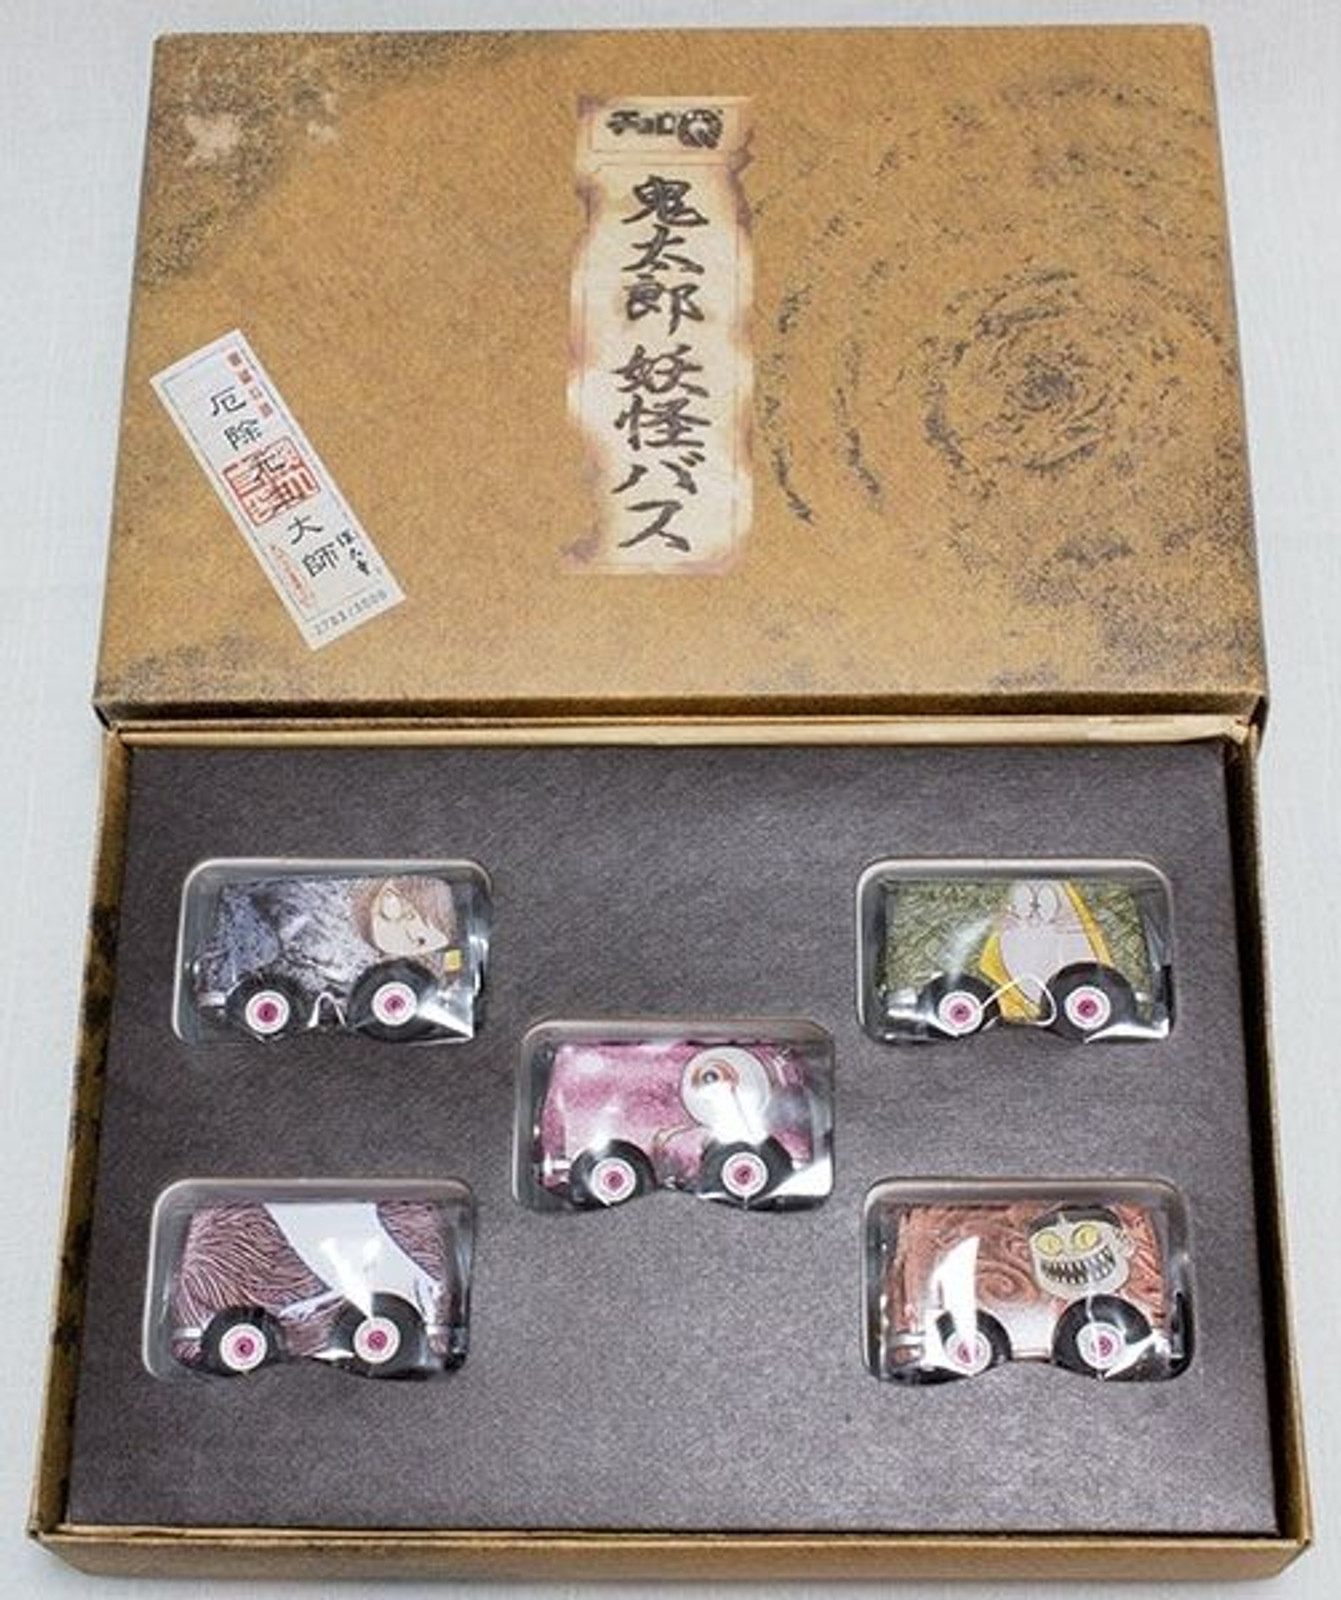 Gegege no Kitaro Choro Q Yokai Bus 5 set Limited Edition 3000 JAPAN ANIME